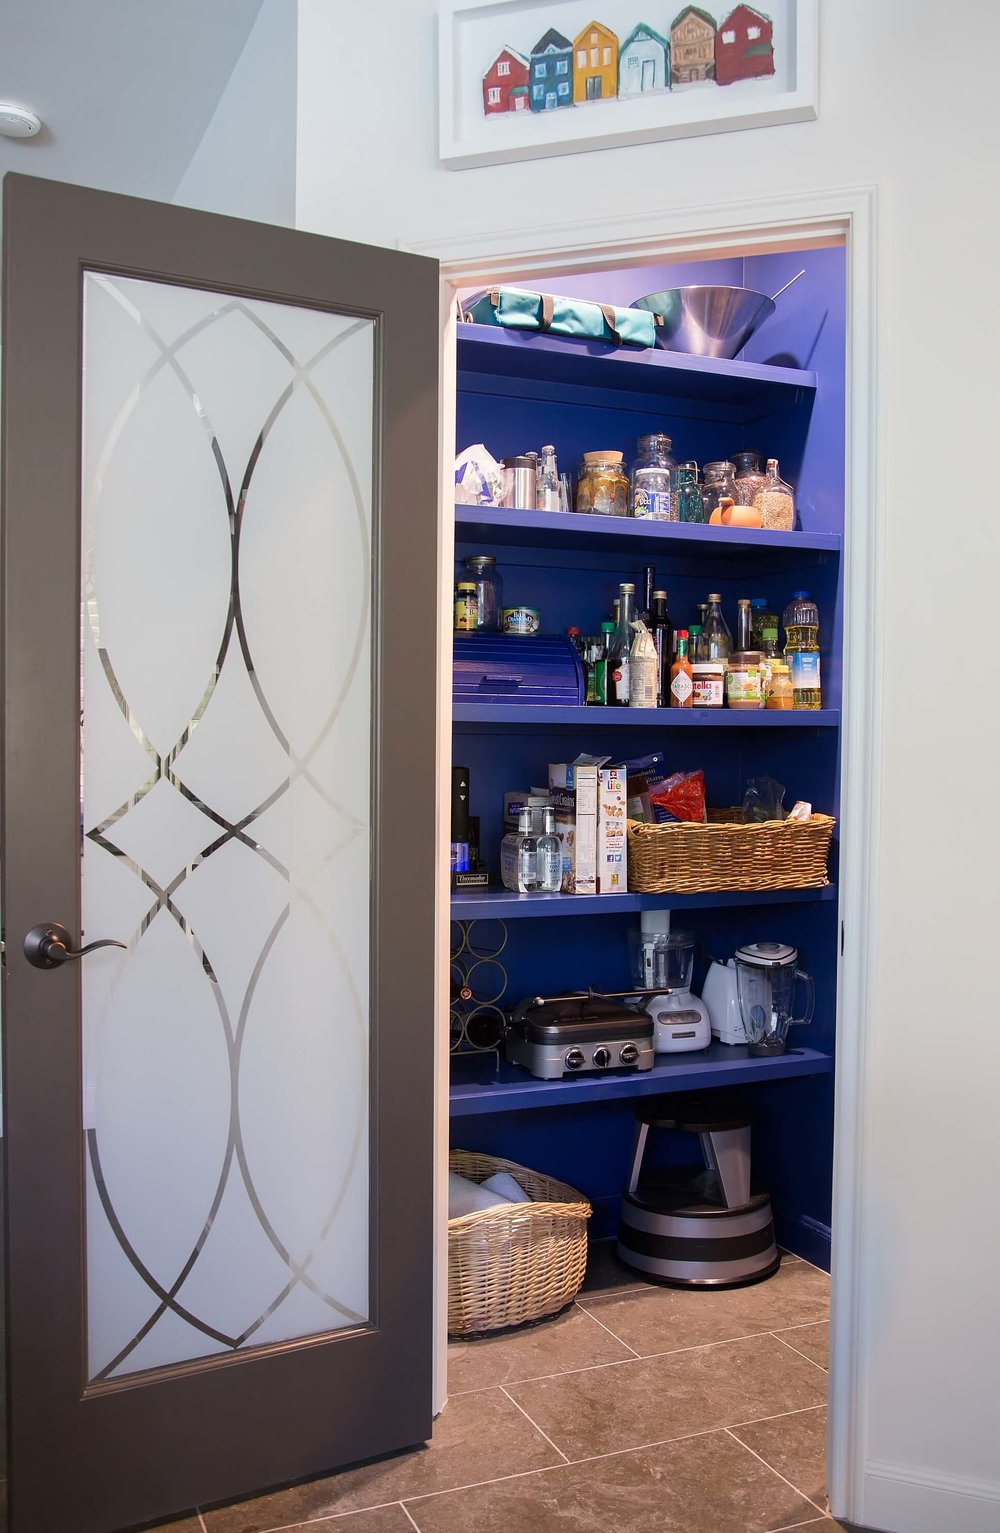 Kitchen Styling - Carla Aston, Photographer: Tori Aston #kitchenstyling #pantry